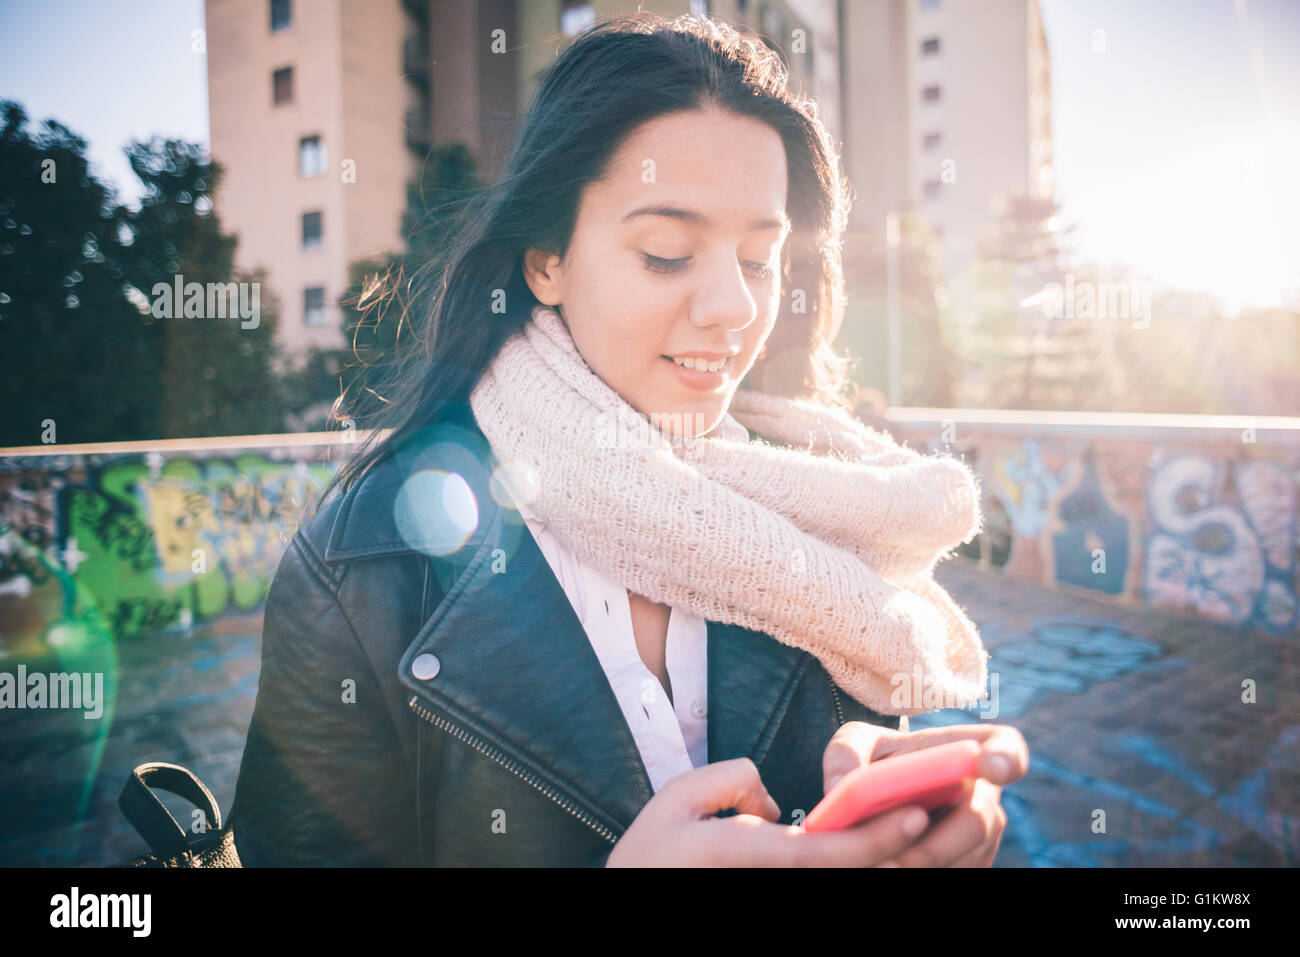 Half length of young beautiful long hair woman in city back light using smartphone tapping touchscreen smiling  - Stock Image